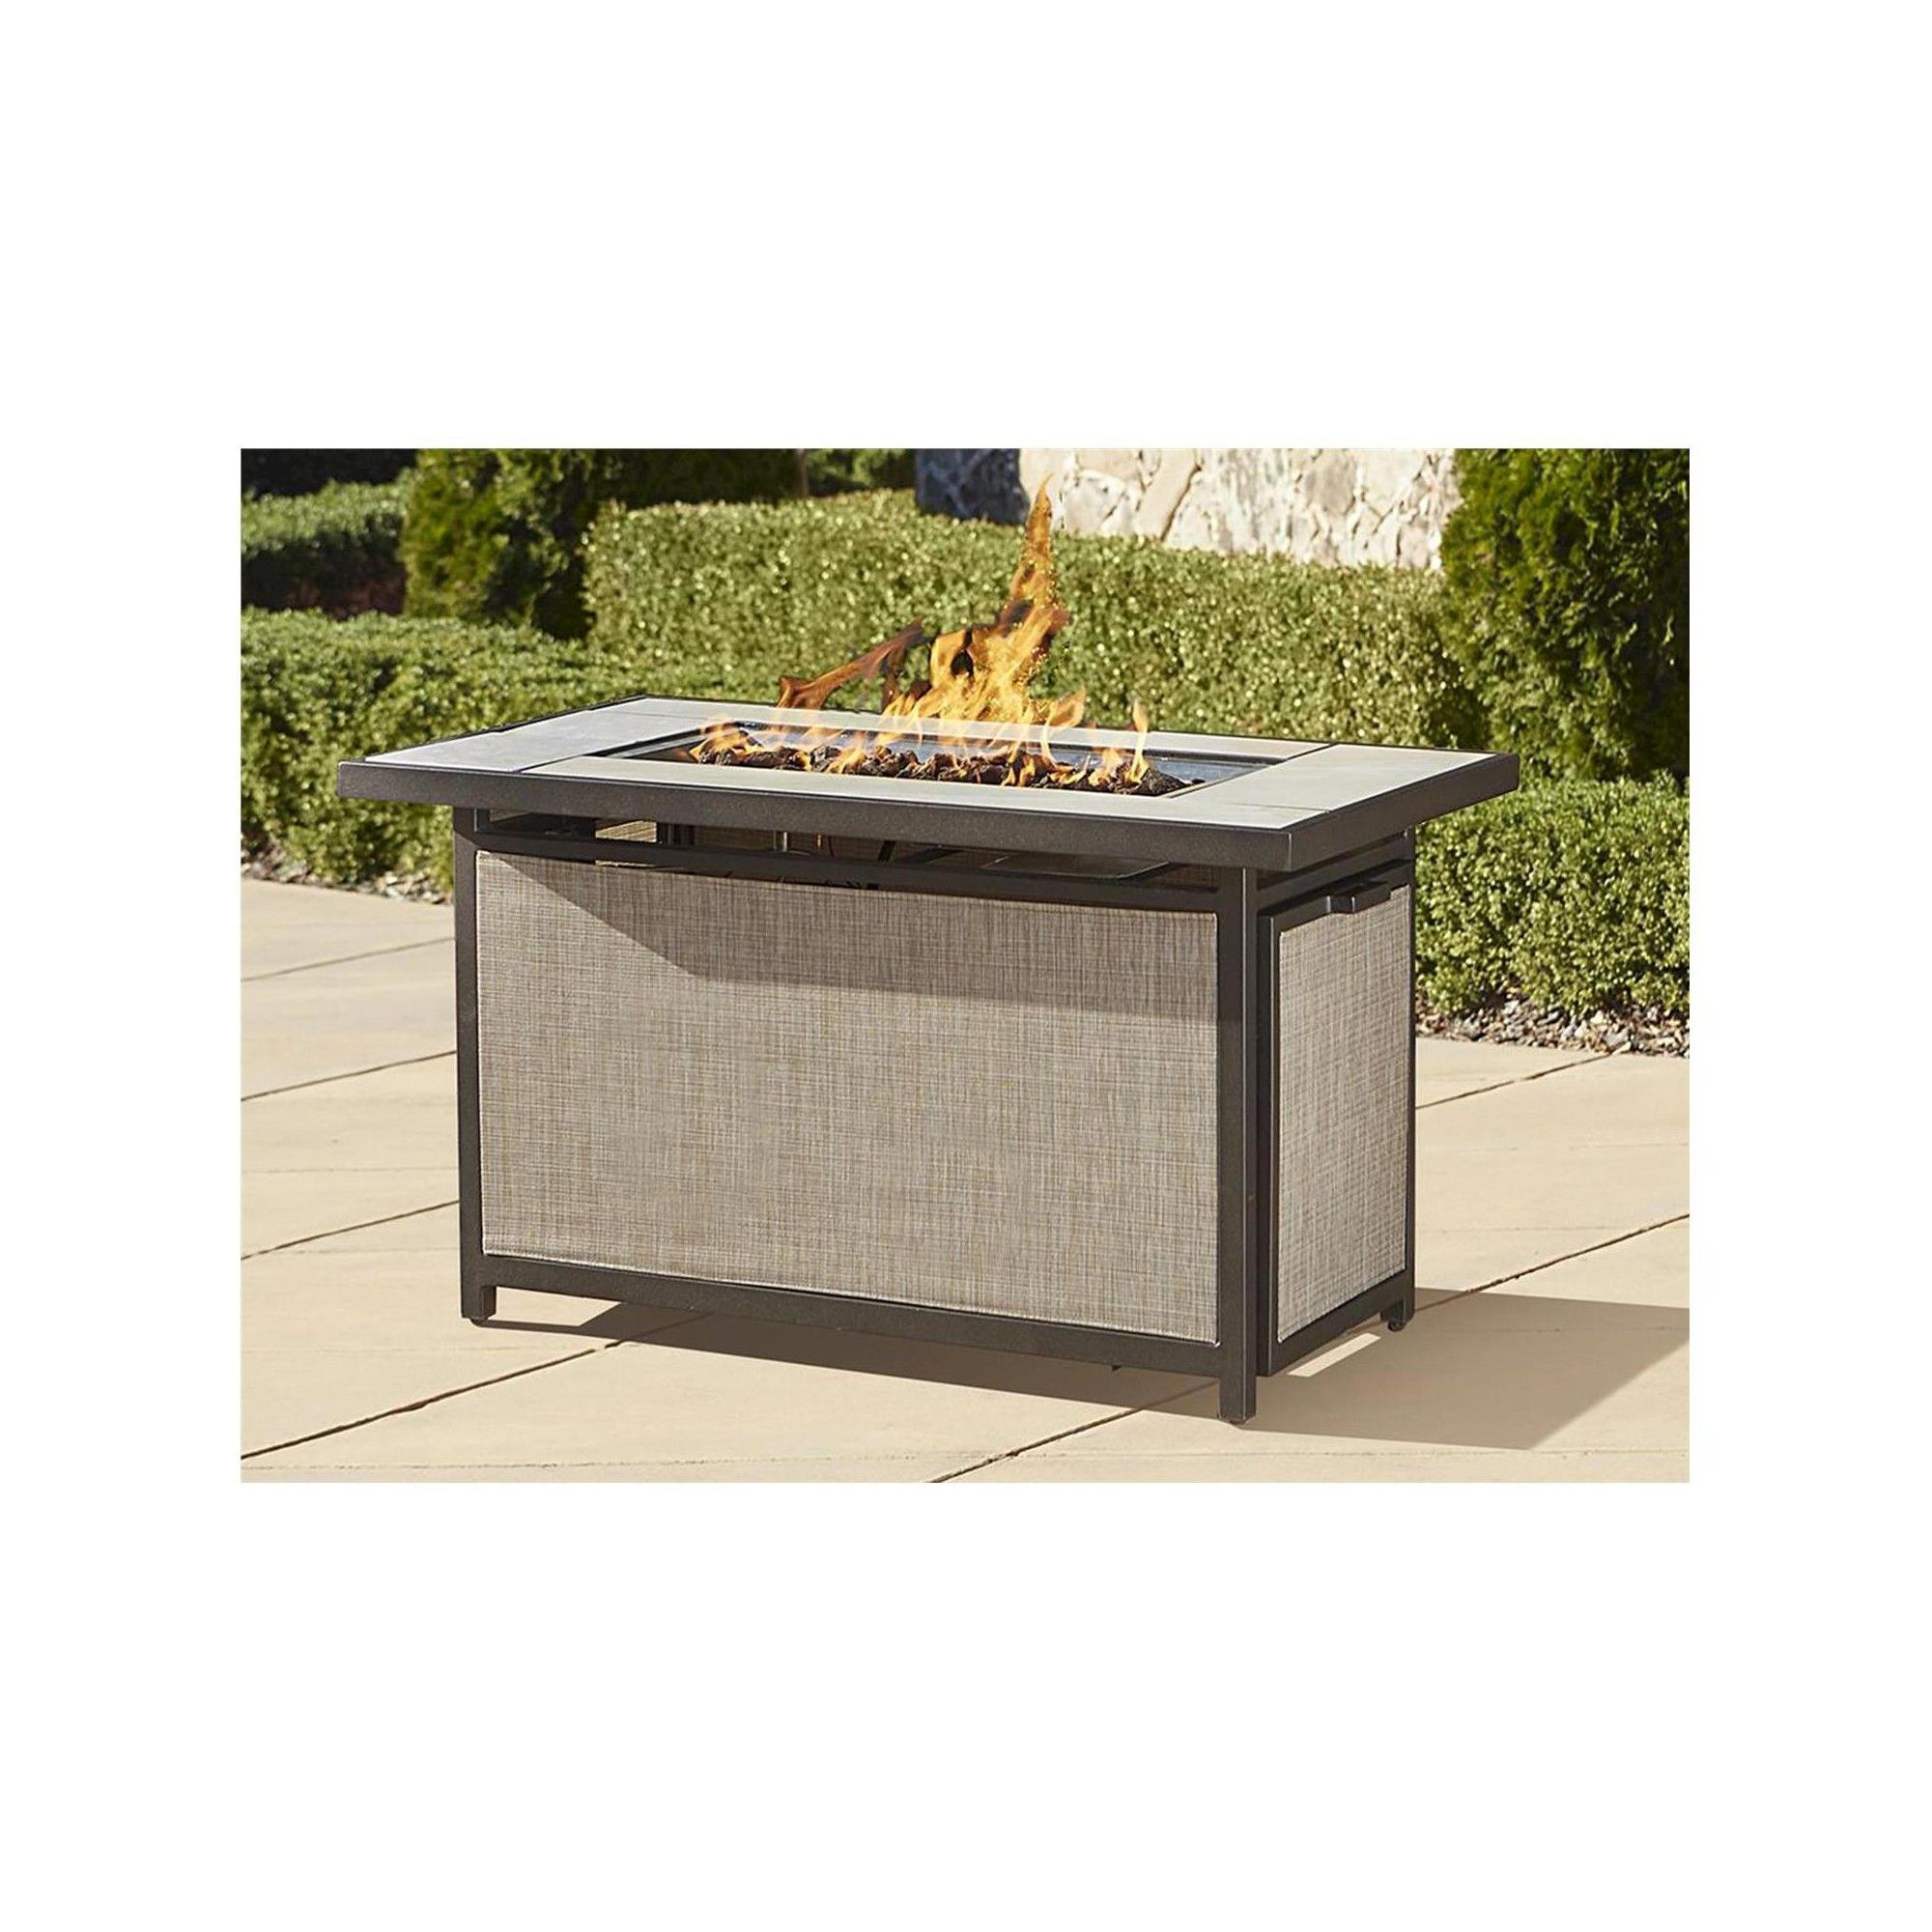 cosco outdoor serene ridge aluminum propane gas fire pit table